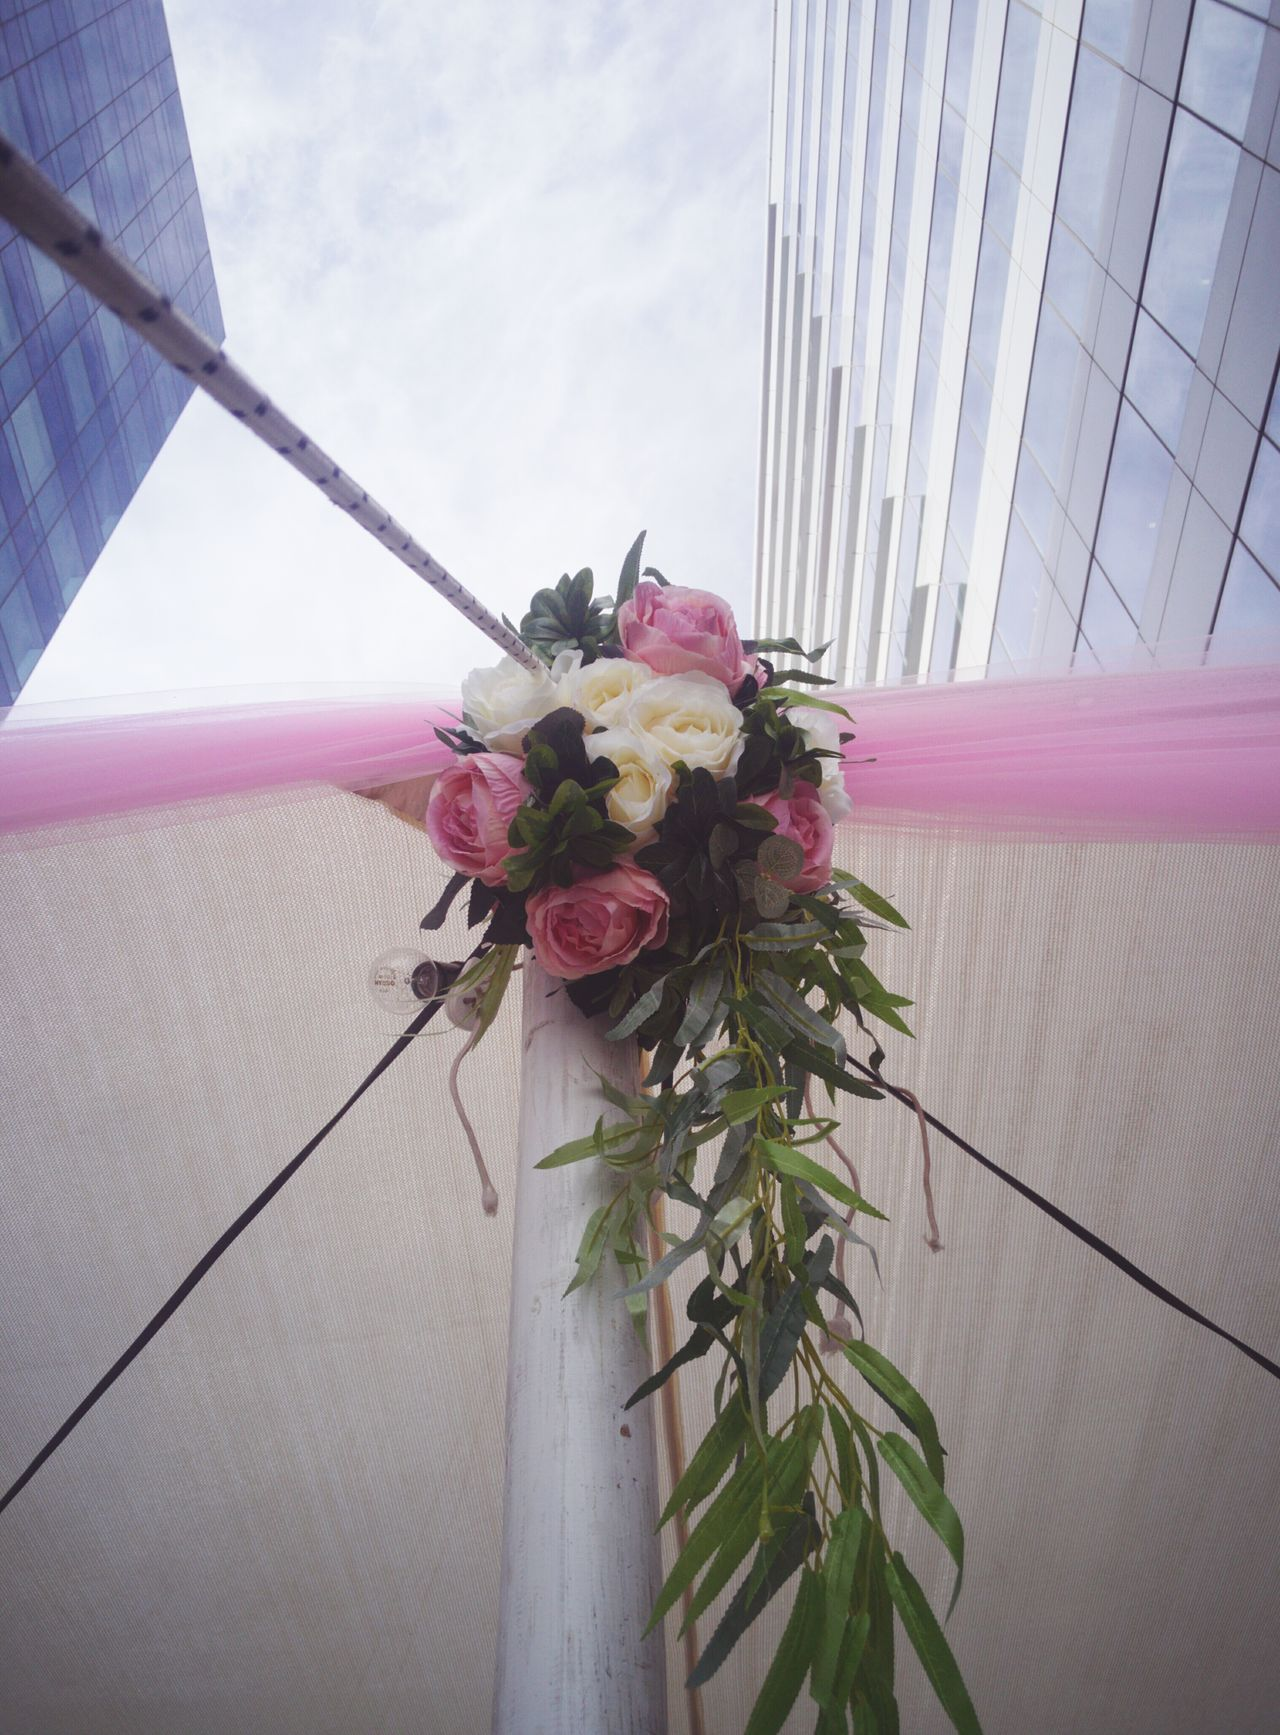 Millennial Pink Pink Color Flower Outdoors City Nature Low Angle View Built Structure Sky Architecture Building Exterior No People Close-up Freshness Flower Head Pink EyeEm EyeEm Team AMPt_community Tadaa Community Getty Images